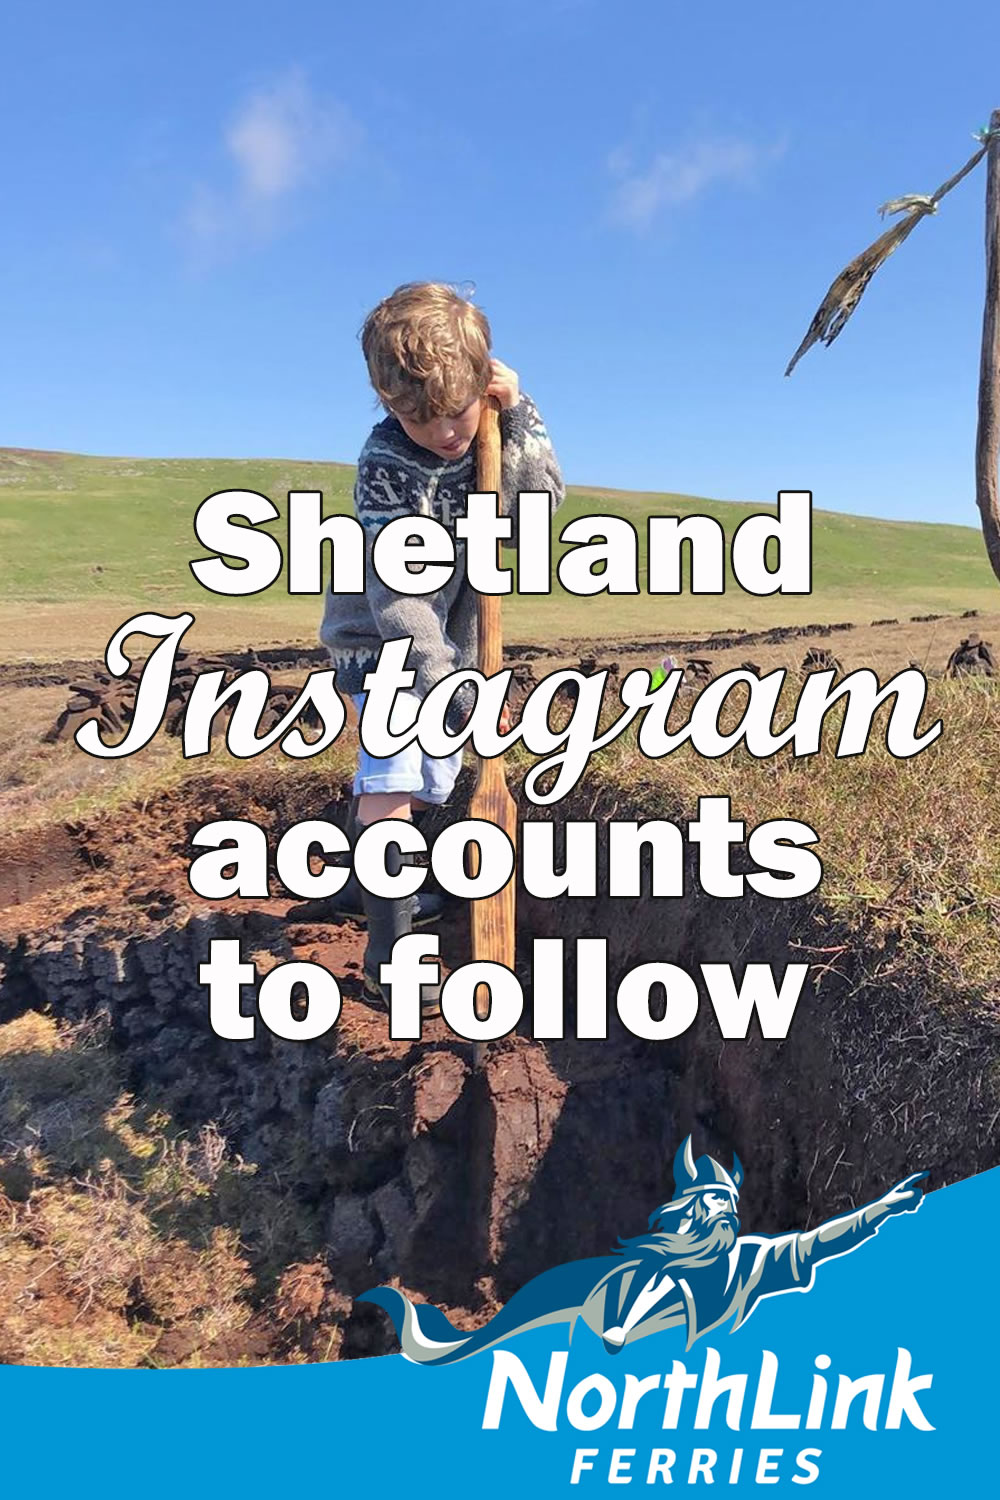 Shetland Instagram accounts to follow